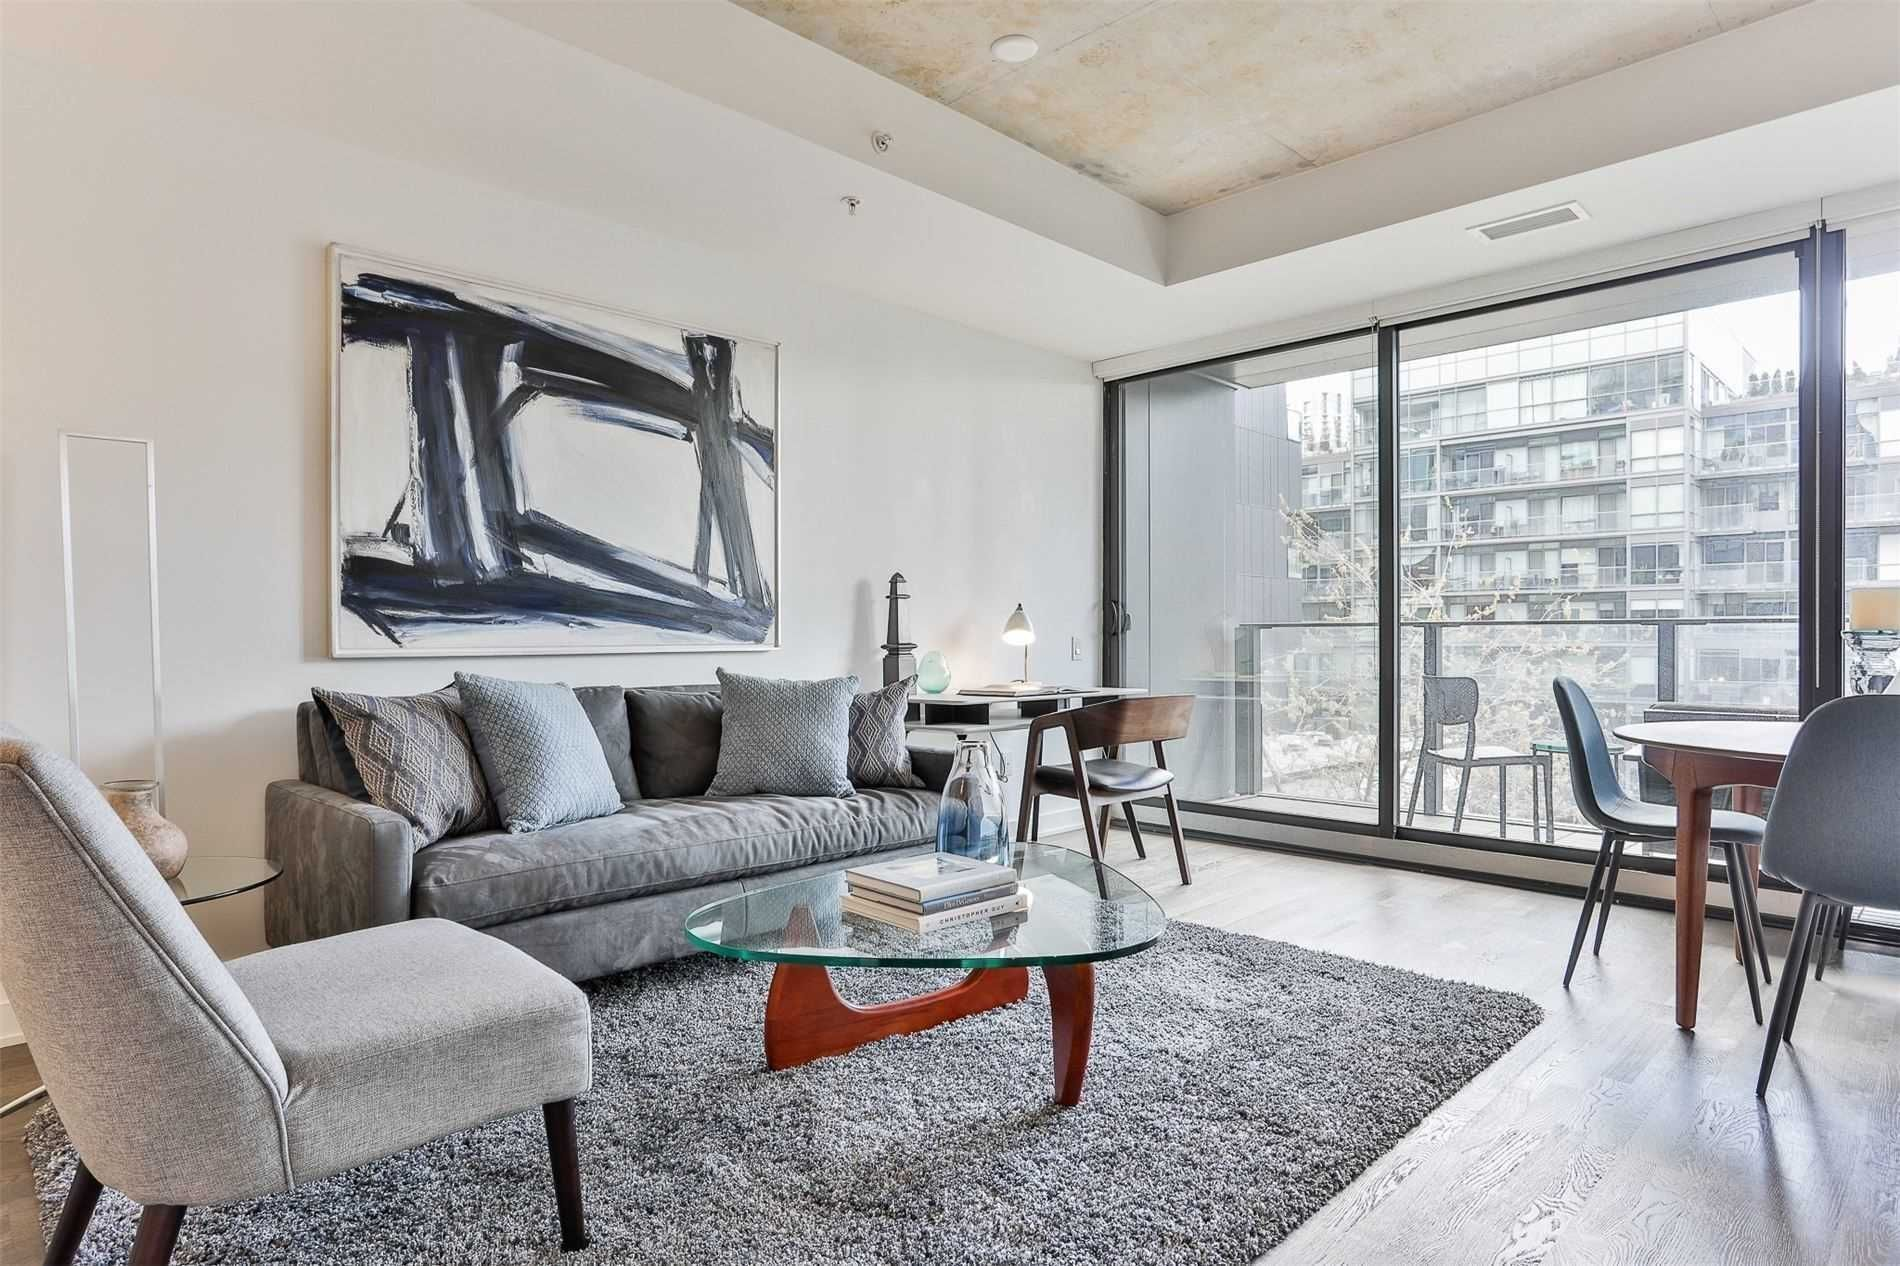 629 King St W, unit 515 for sale in Toronto - image #1